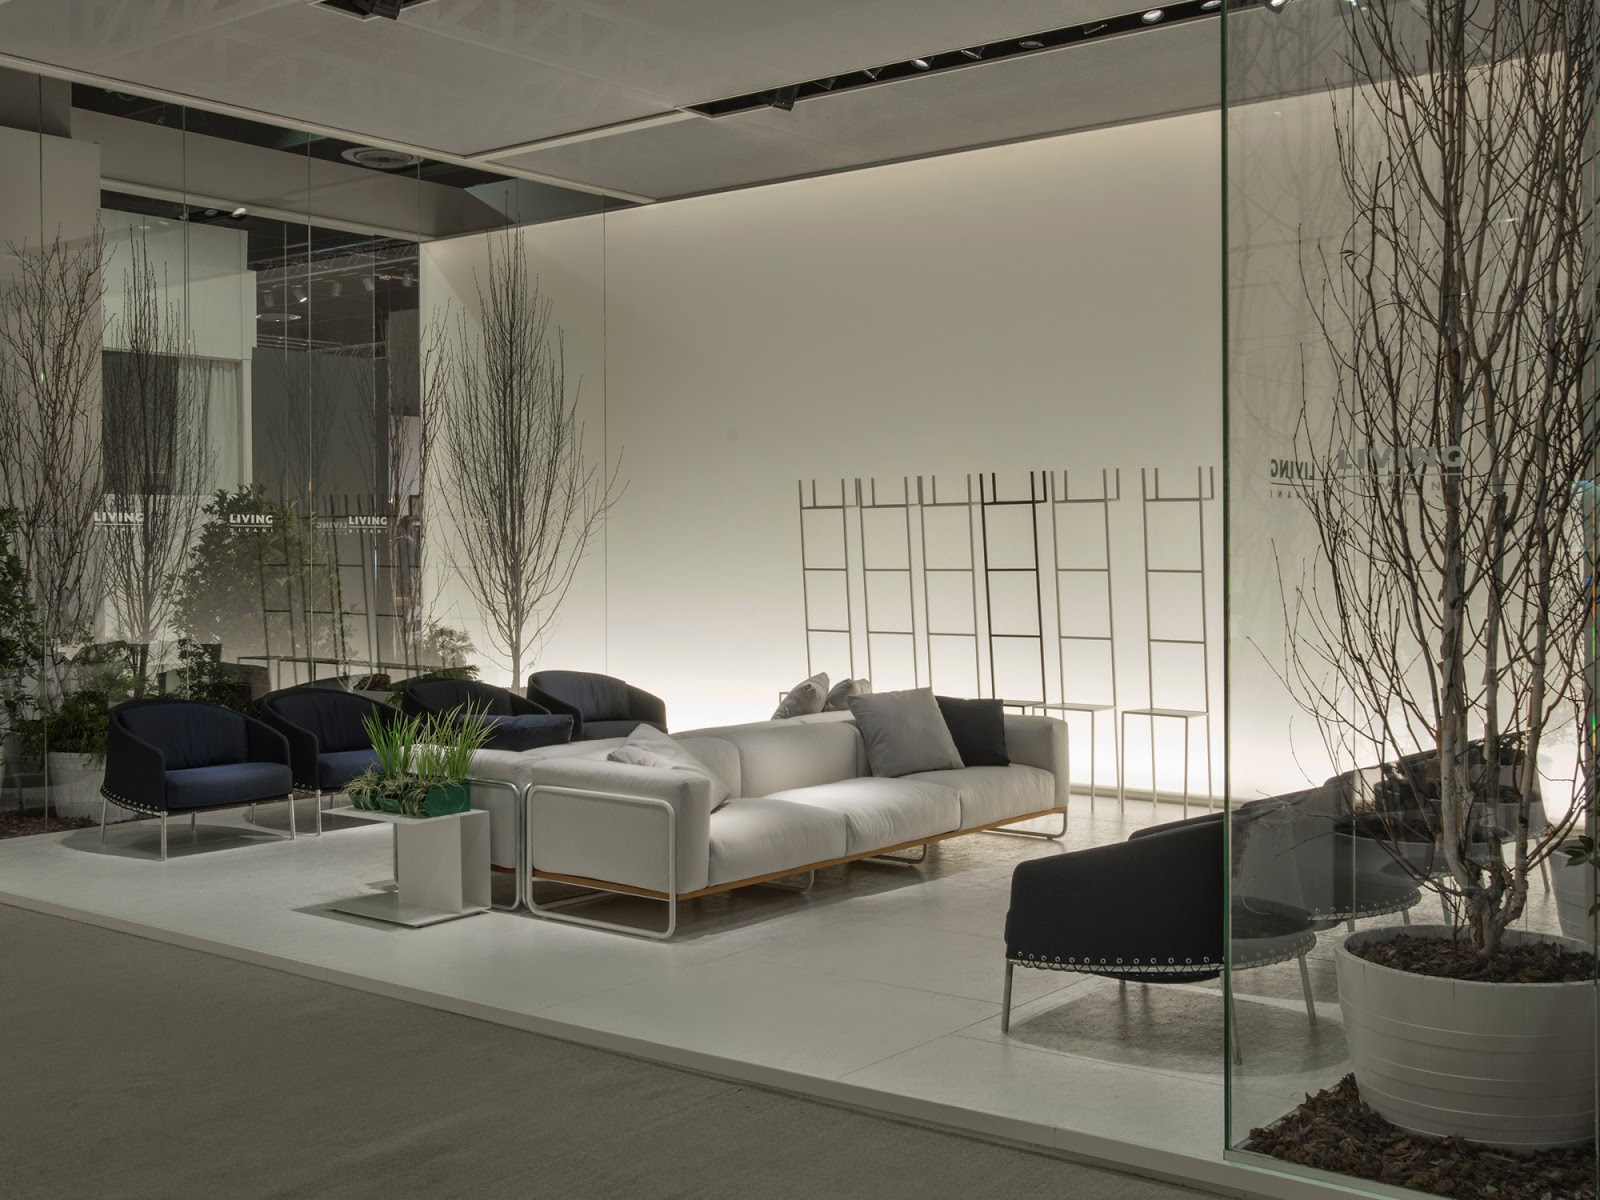 Filo sofa and Poncho lounge chairs from Living Divani